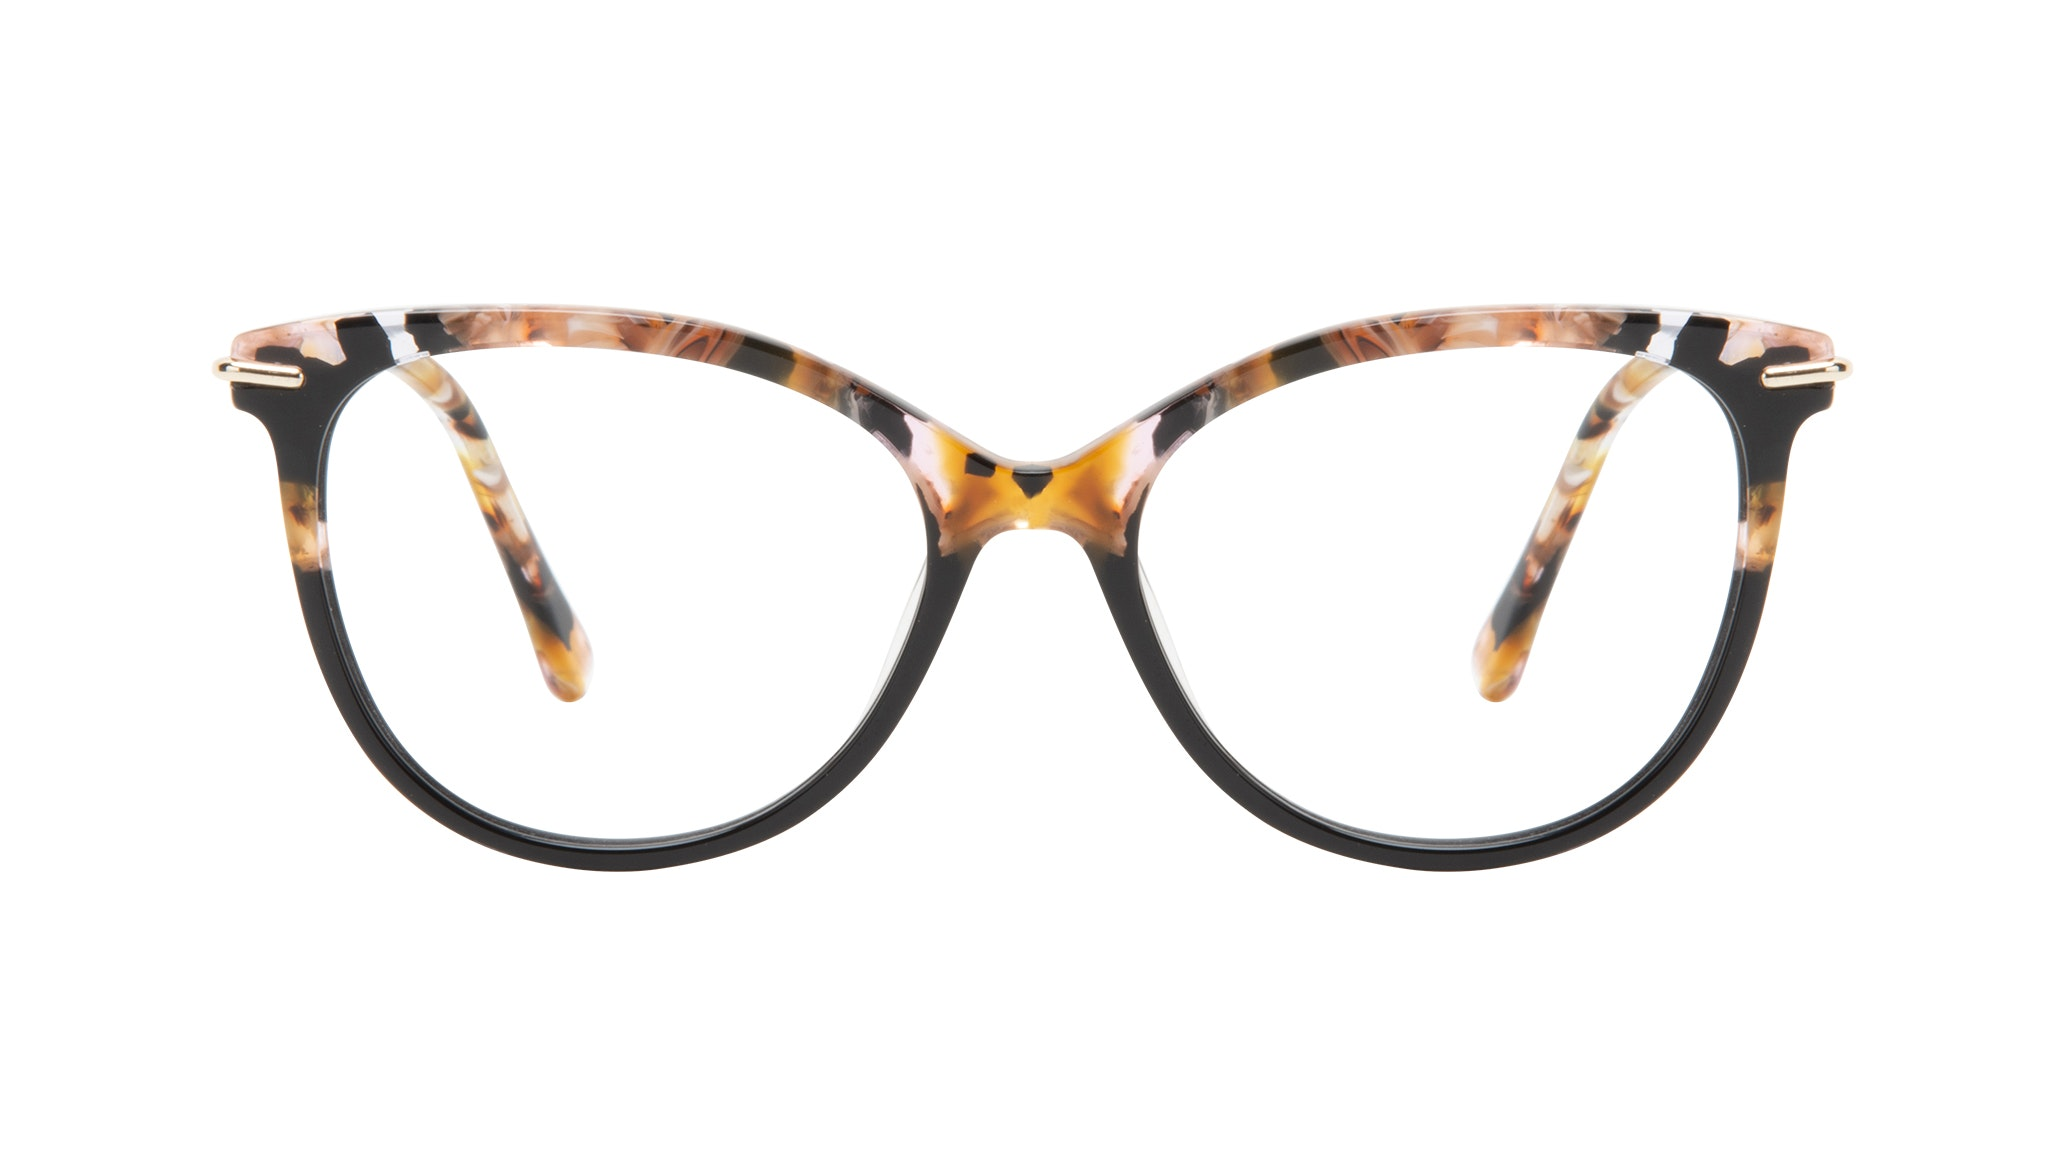 Affordable Fashion Glasses Round Eyeglasses Women Sublime Black Flake